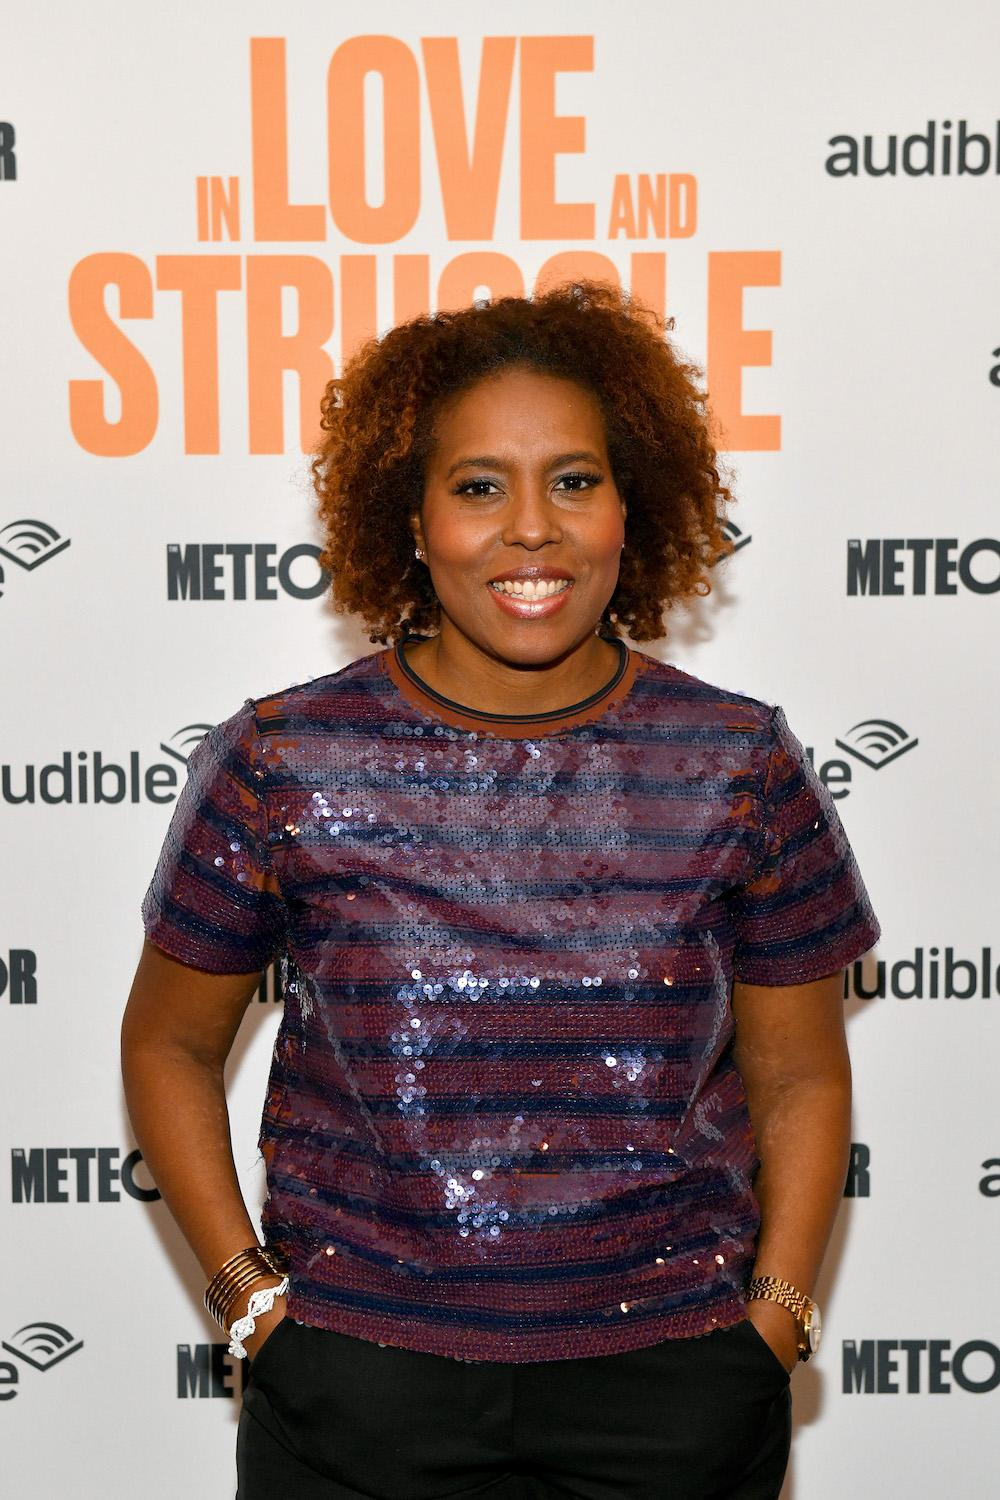 """Salamishah Tillet attends as Audible presents: """"In Love and Struggle"""" at Audible's Minetta Lane Theater on February 28, 2020 in New York City. (Photo by Craig Barritt/Getty Images for Audible)"""